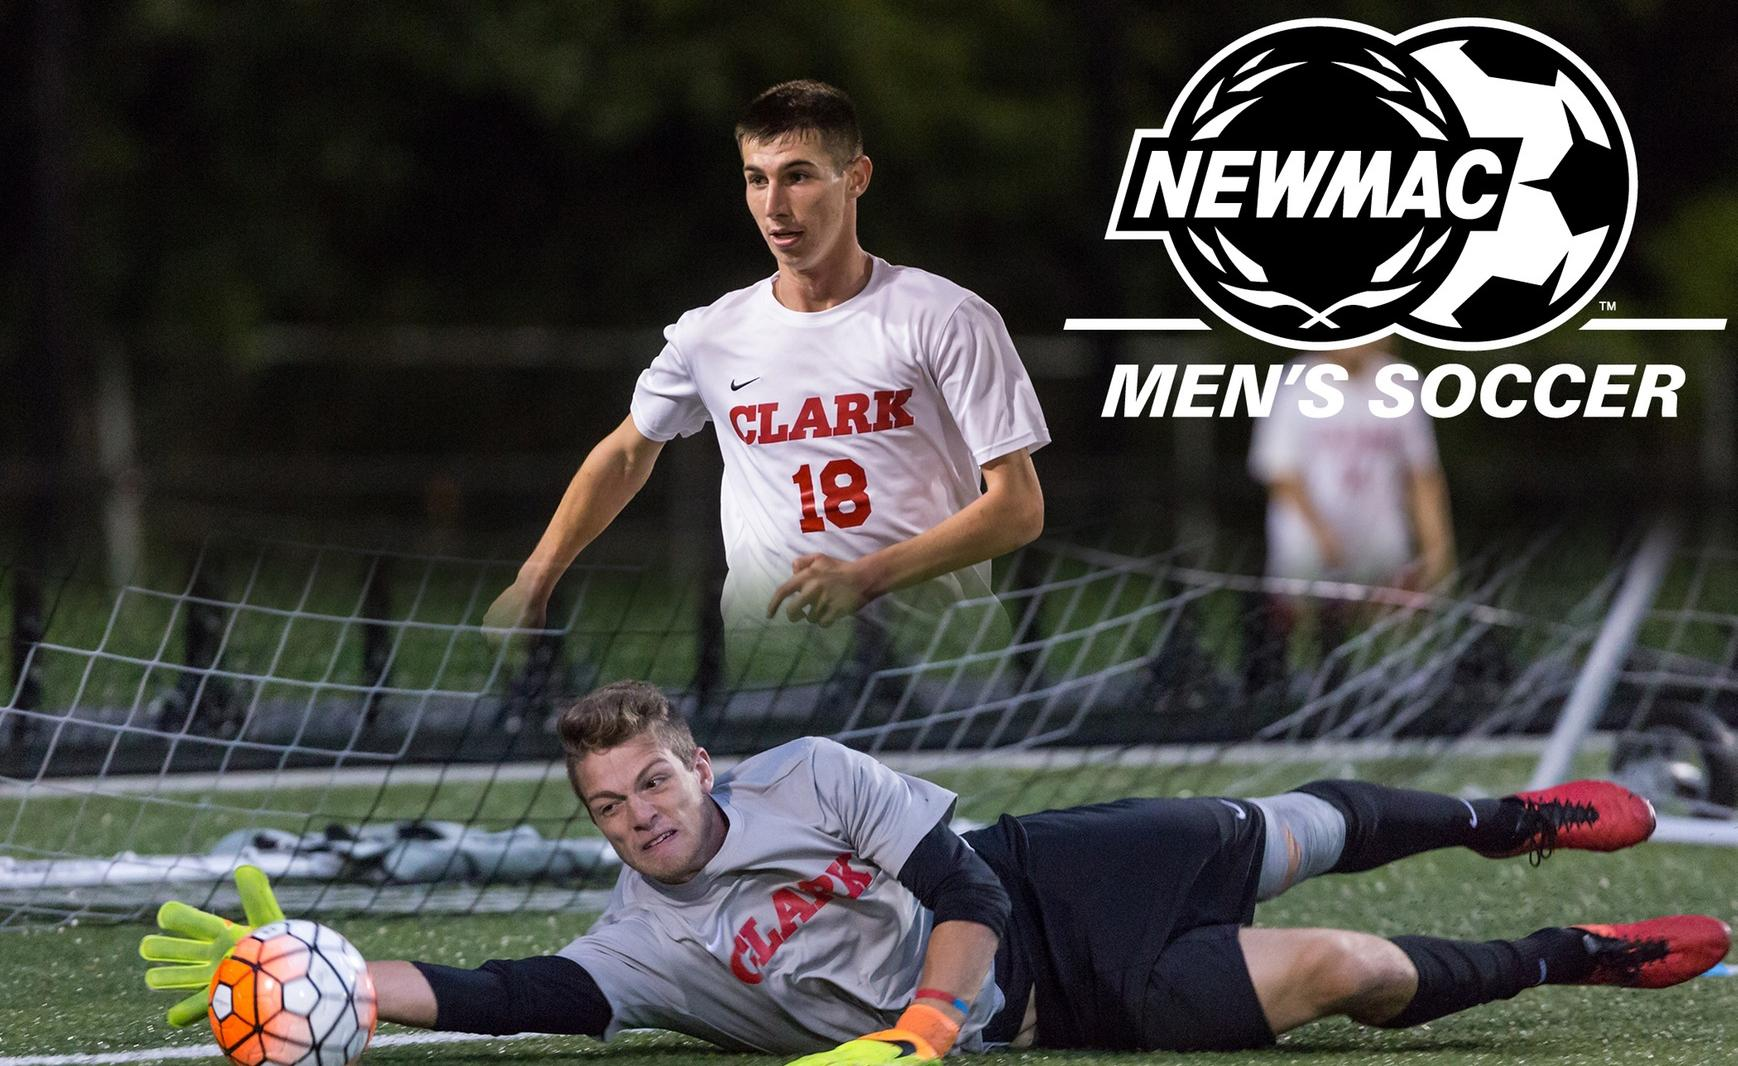 Maguire and Munroe Sweep NEWMAC Men's Soccer Weekly Awards